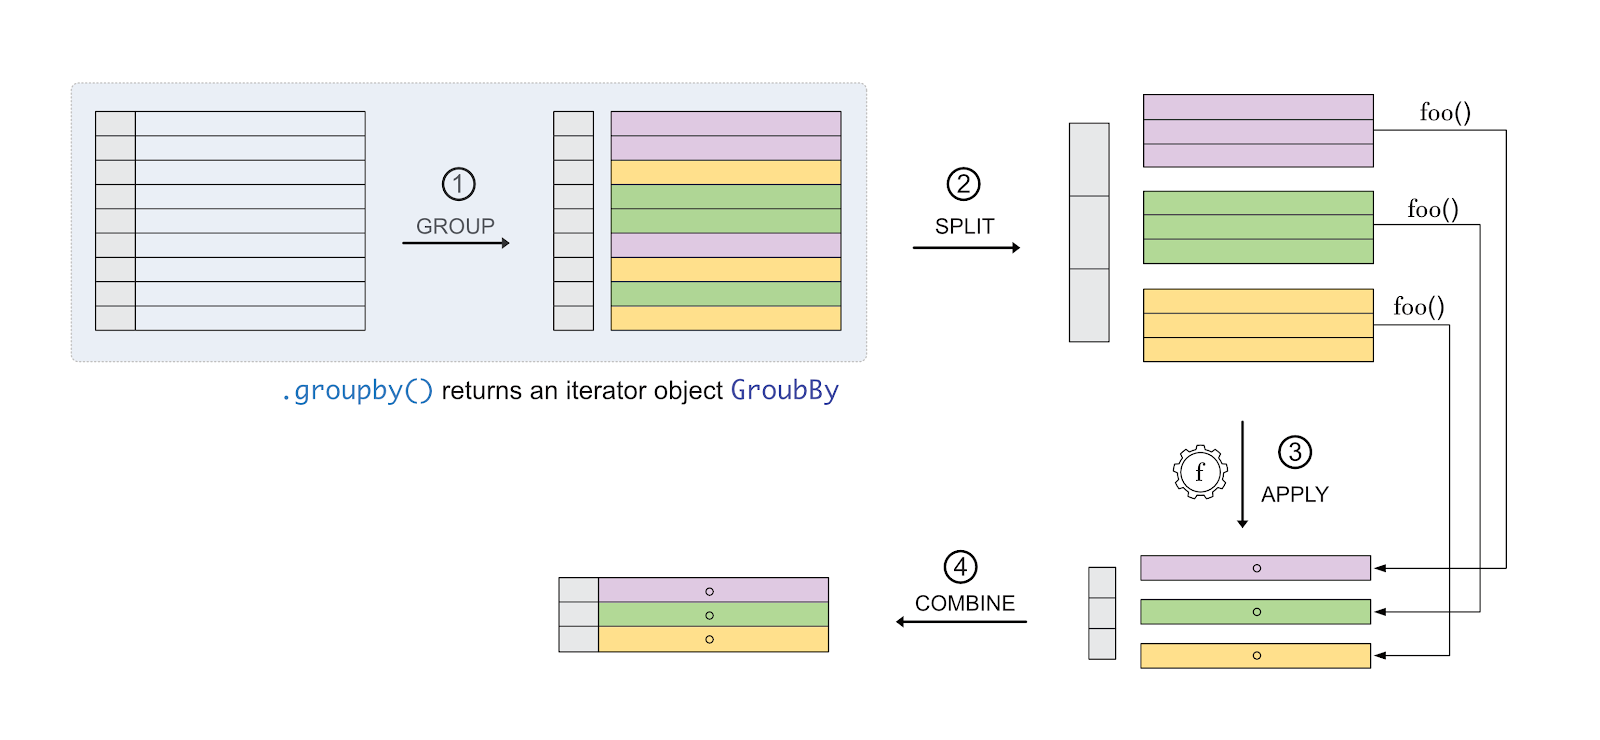 How to use the Split-Apply-Combine strategy in Pandas groupby